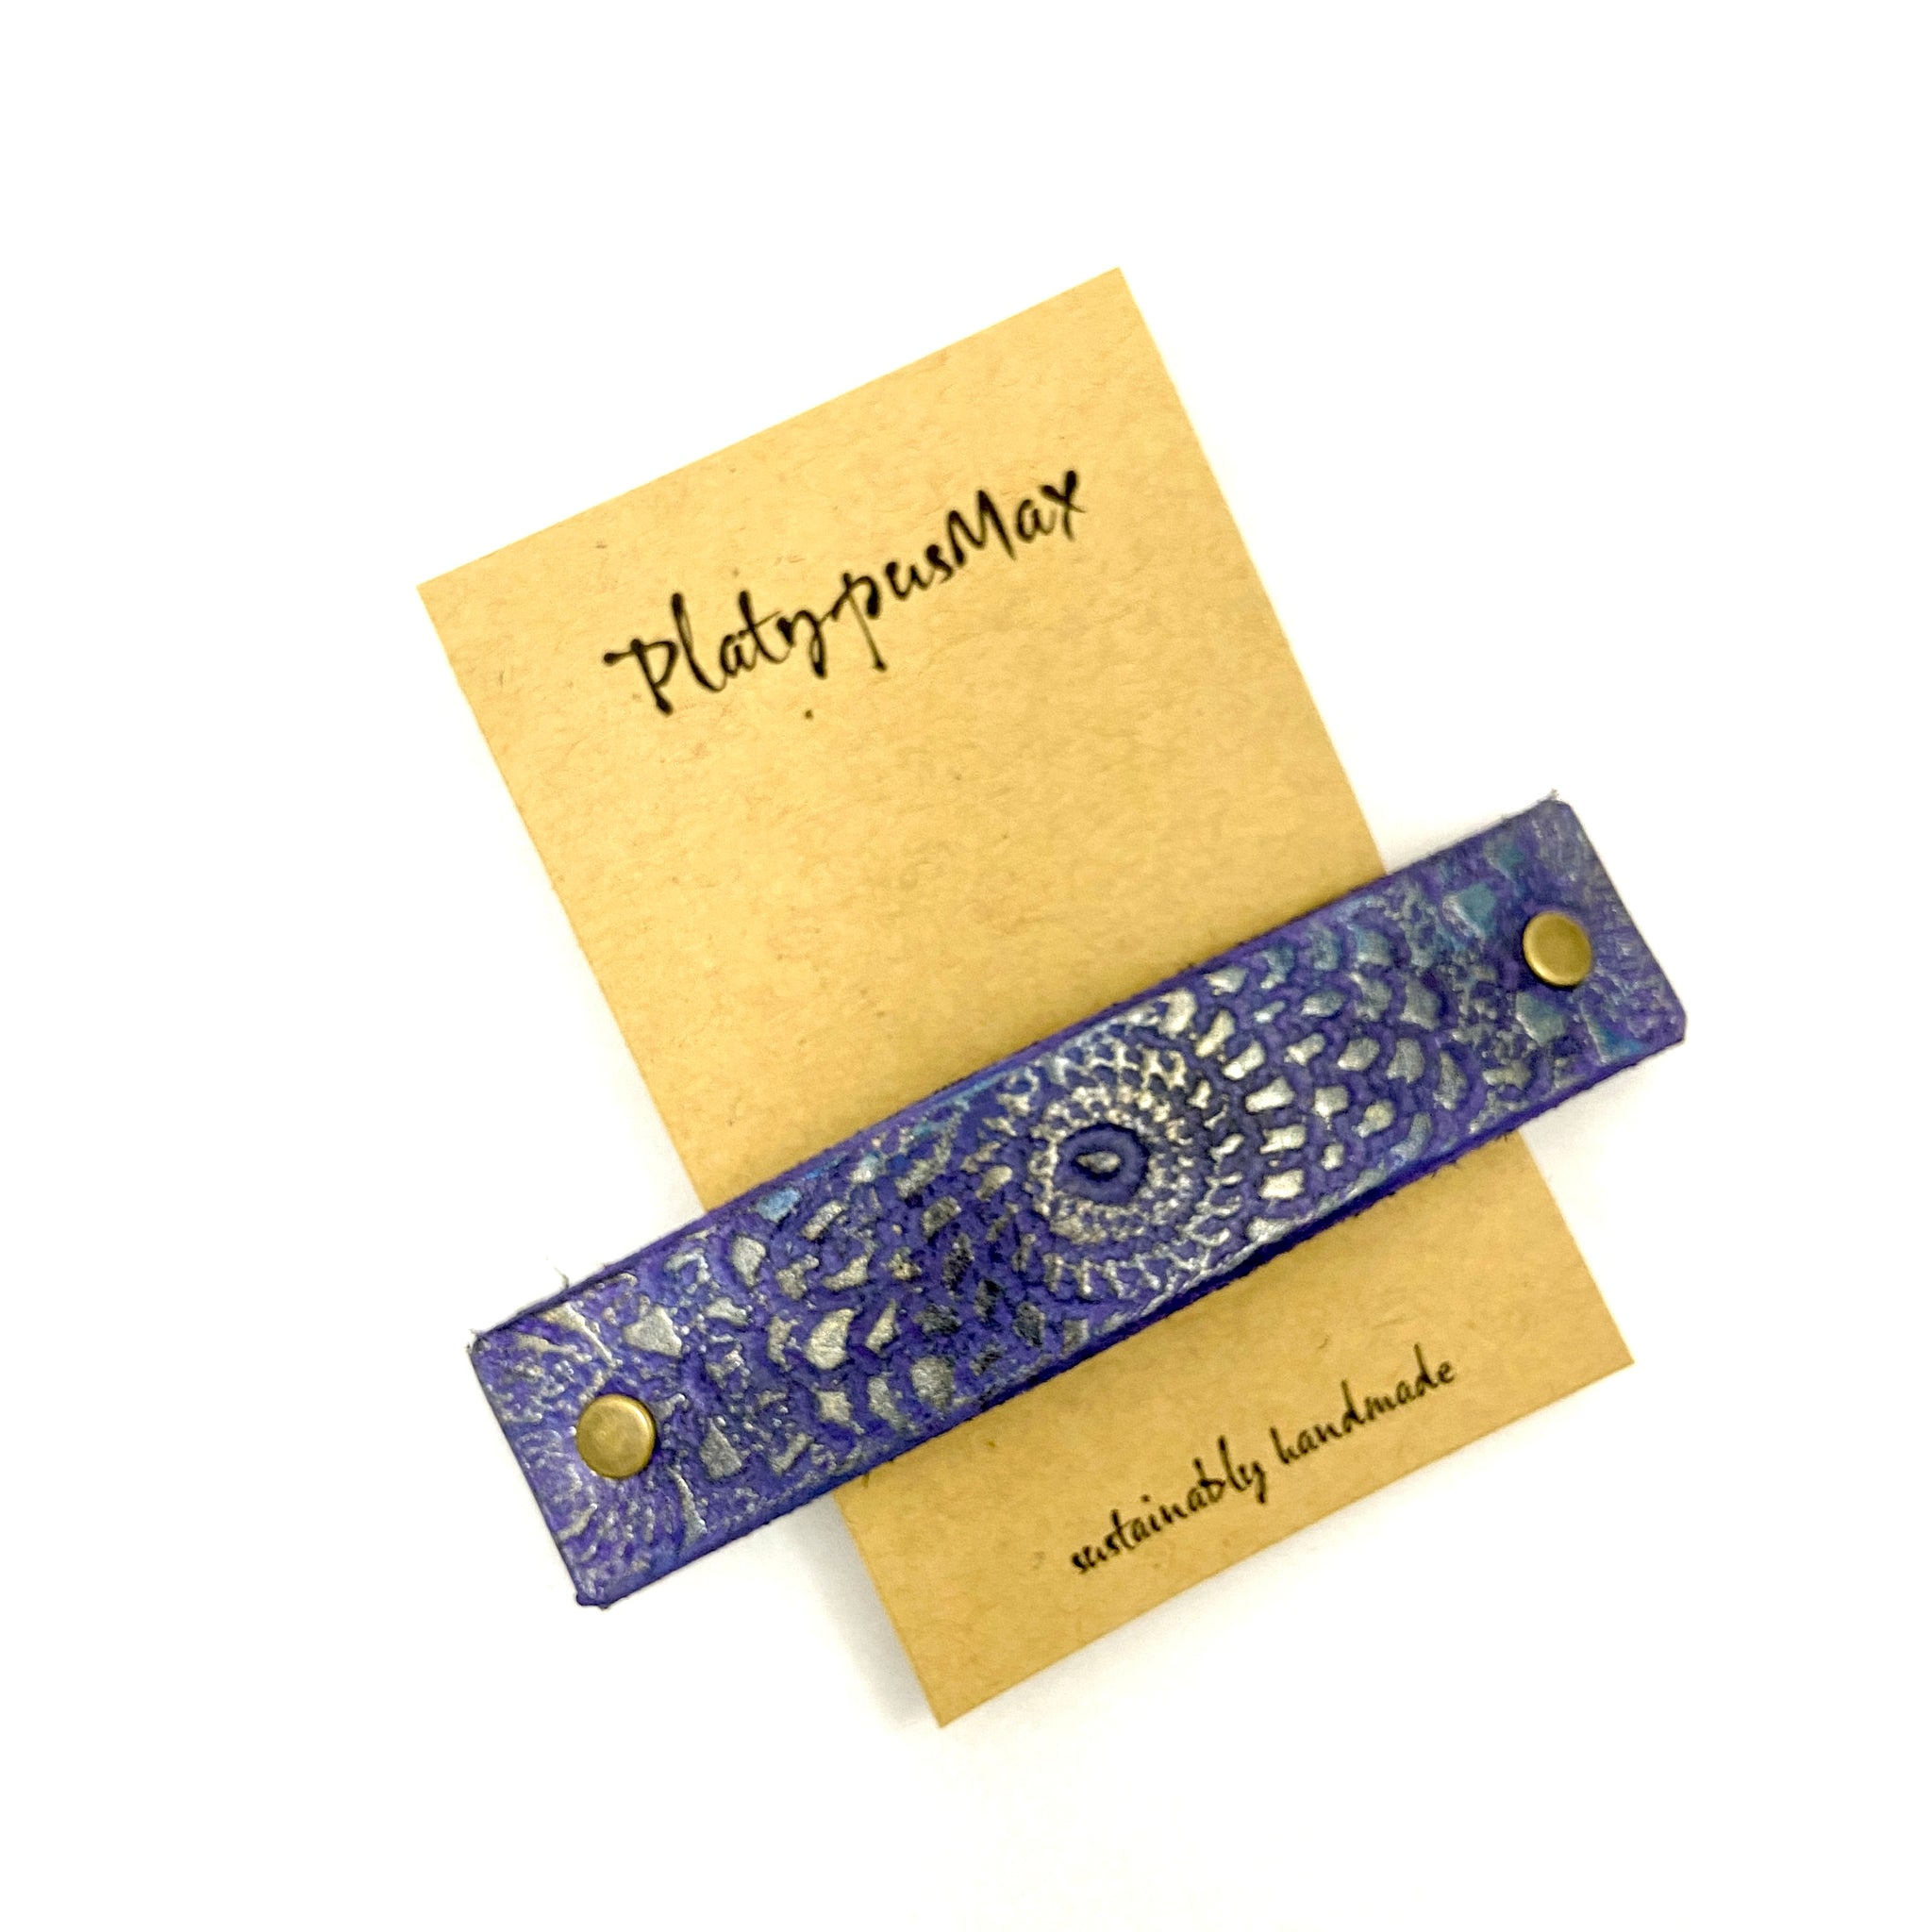 Shimmery Purple and Gold Embossed Mandala Leather Hair Barrette - Platypus Max